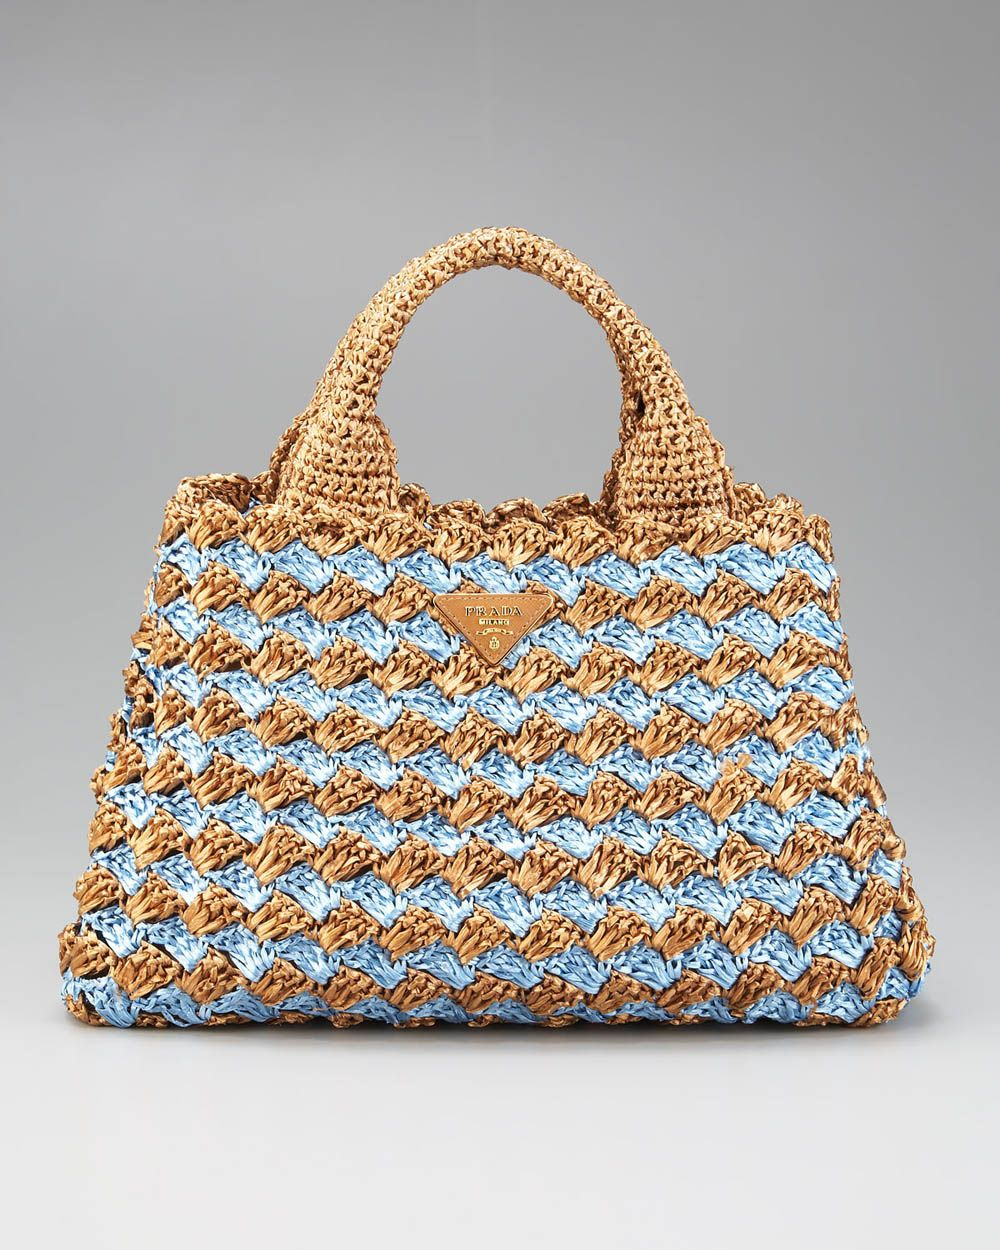 bc5a14ecfe Prada Bi-Color Crocheted Raffia Tote. Basketweave stitch.